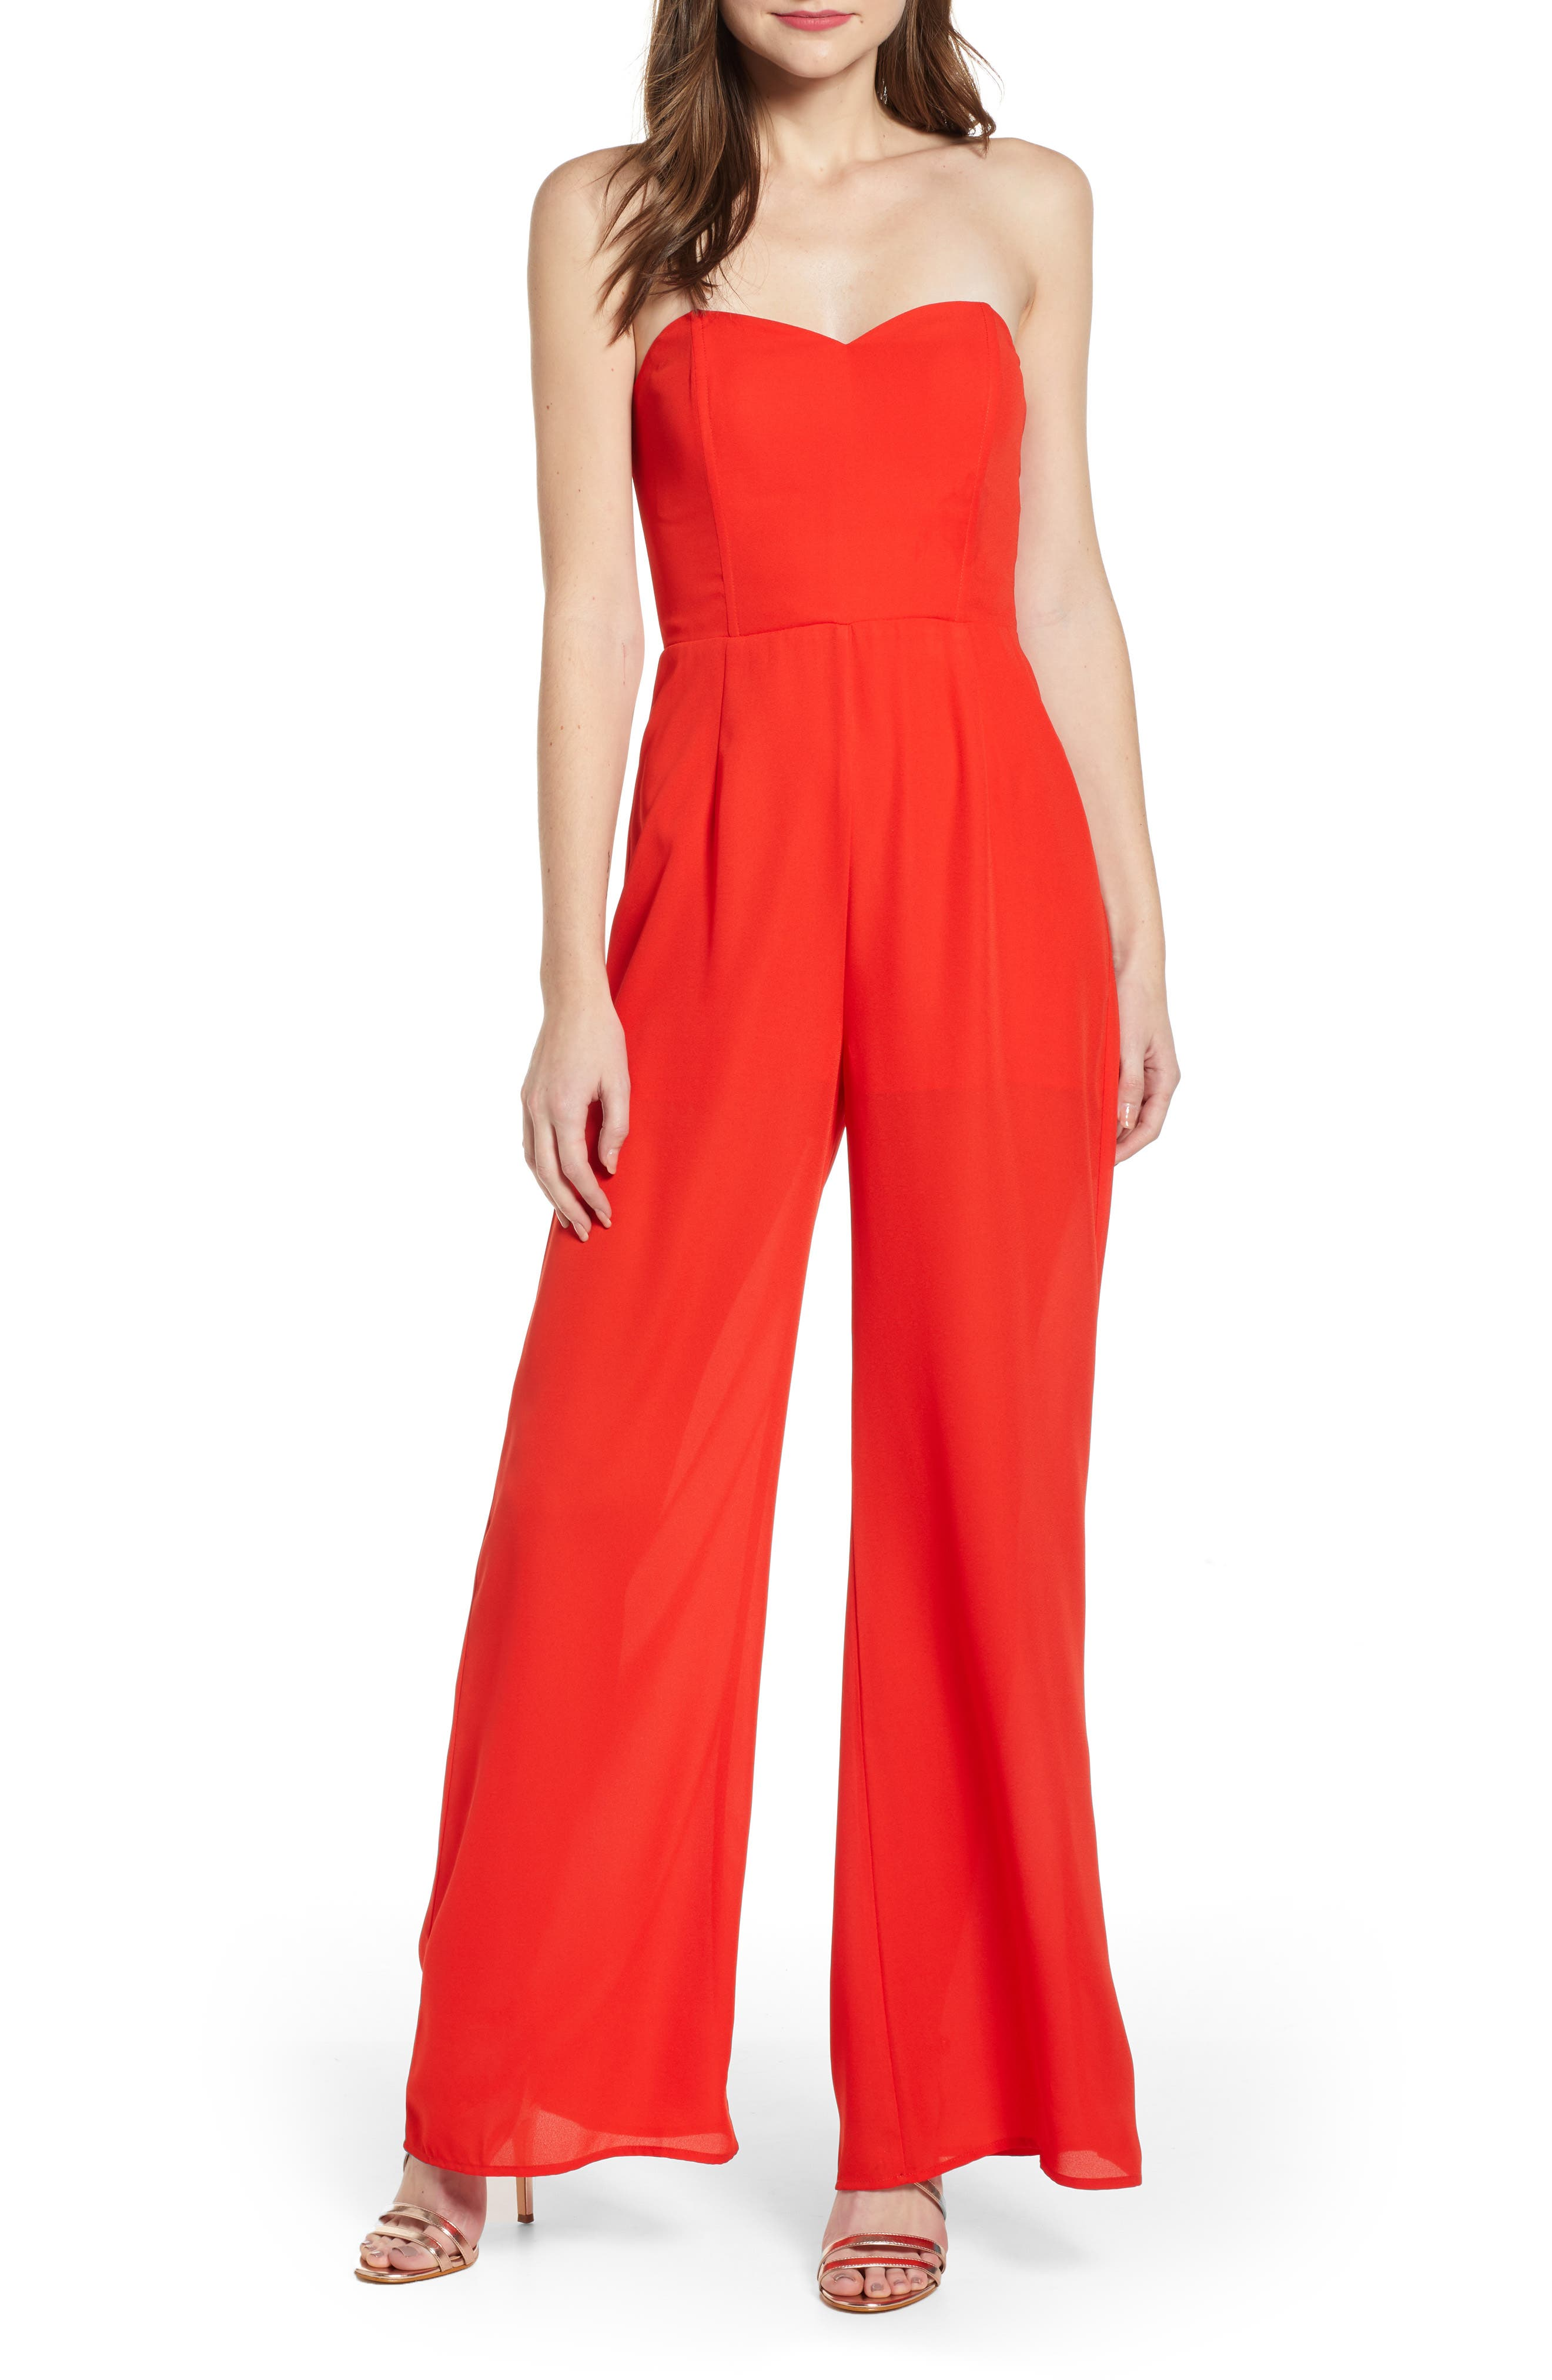 LEITH Strapless Jumpsuit, Main, color, RED SCARLET